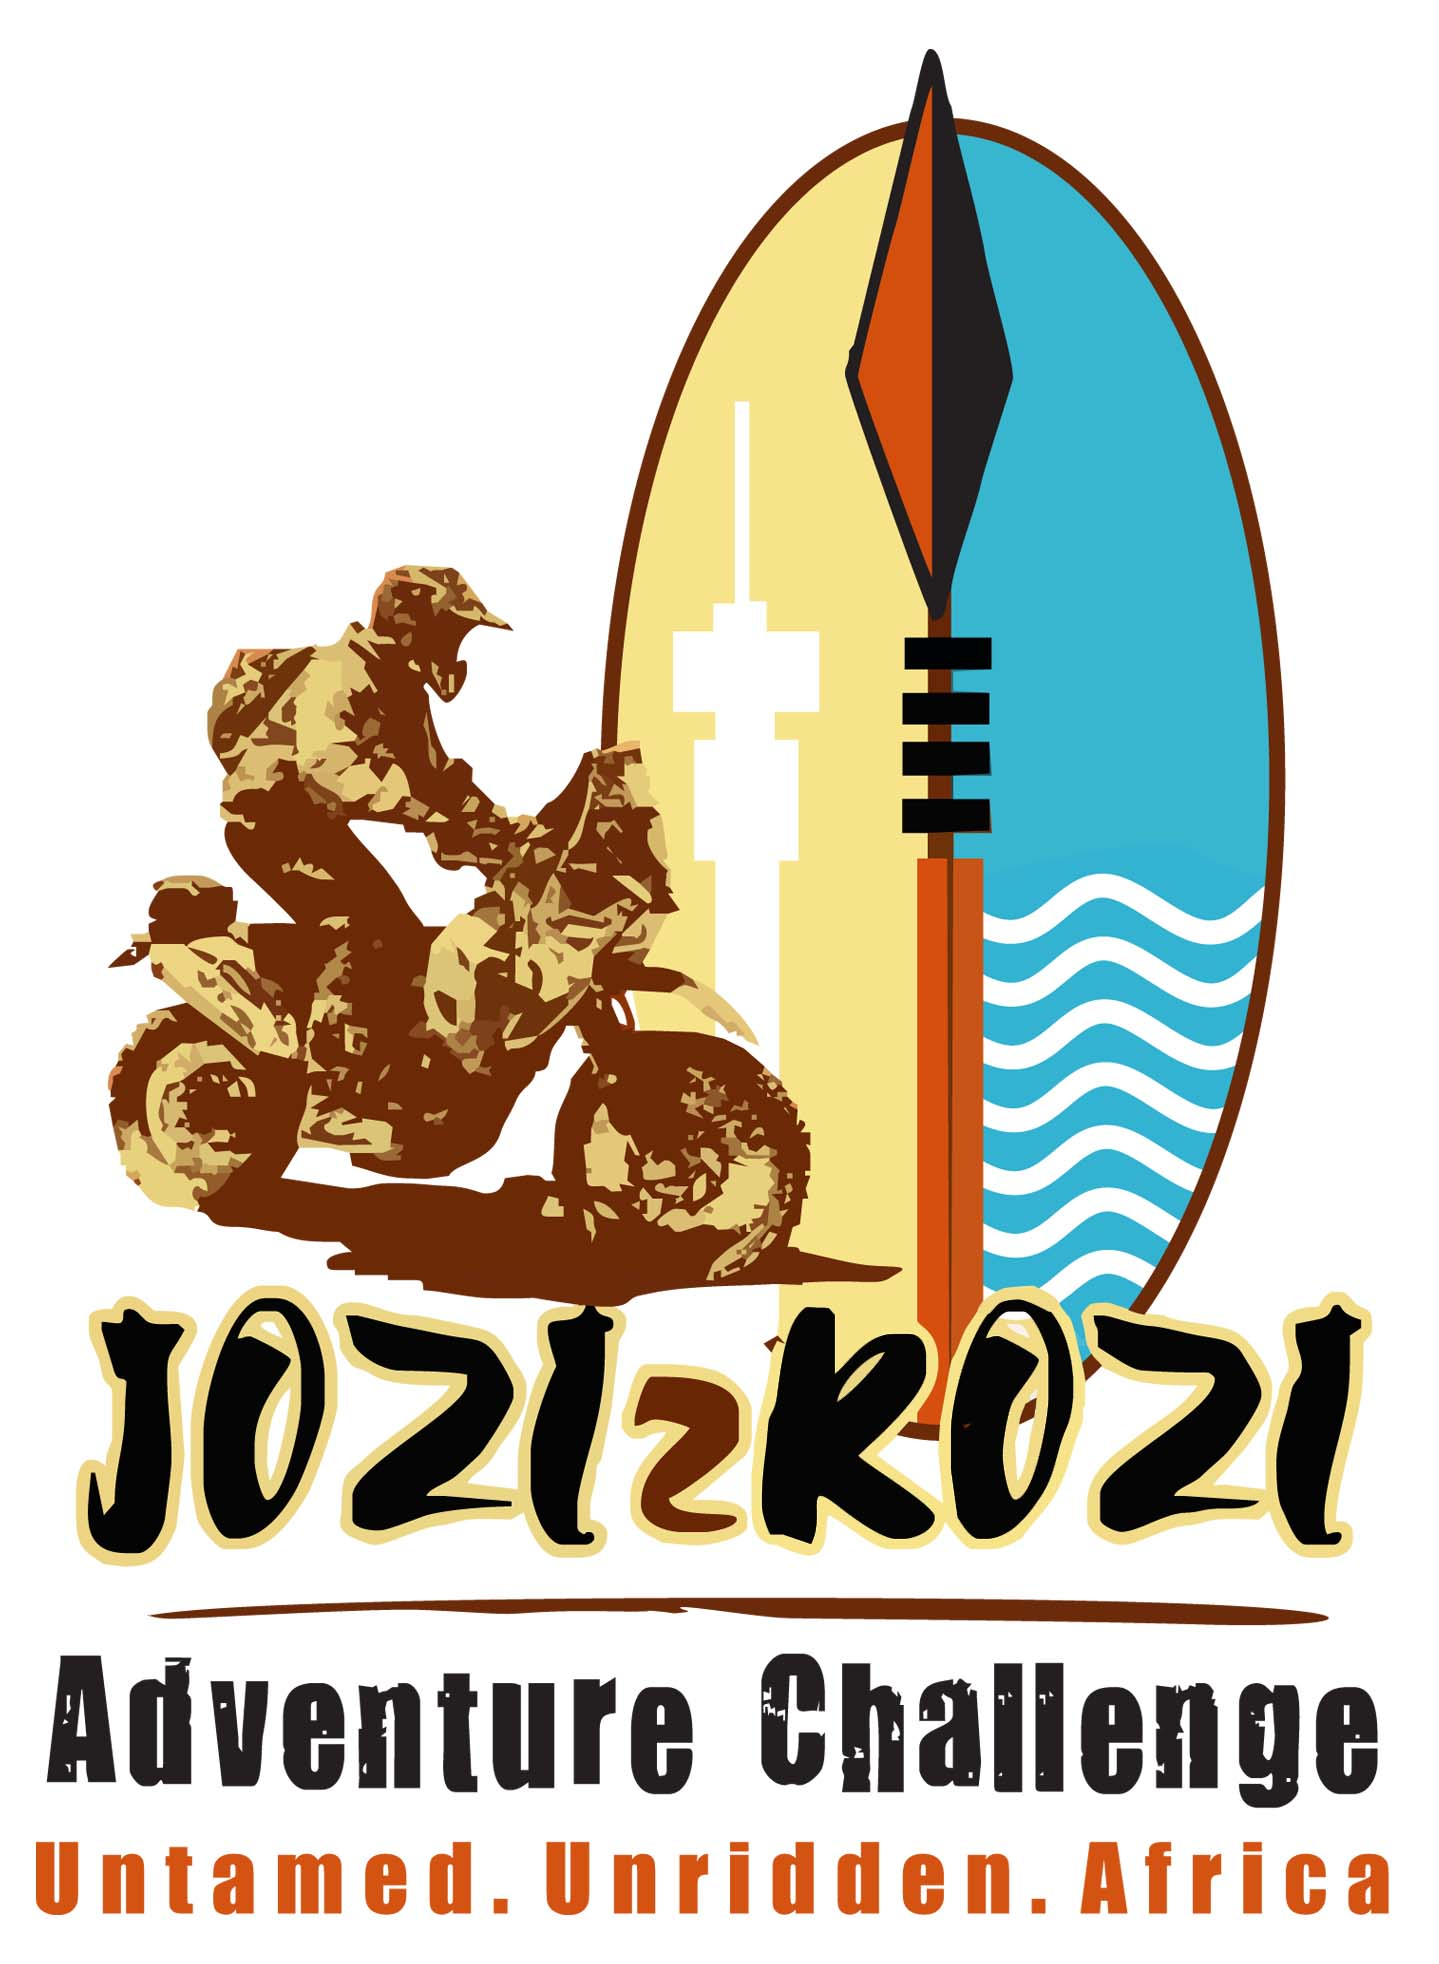 Jozi2Kozi – Not for Sissies, Untamed, Unridden Africa